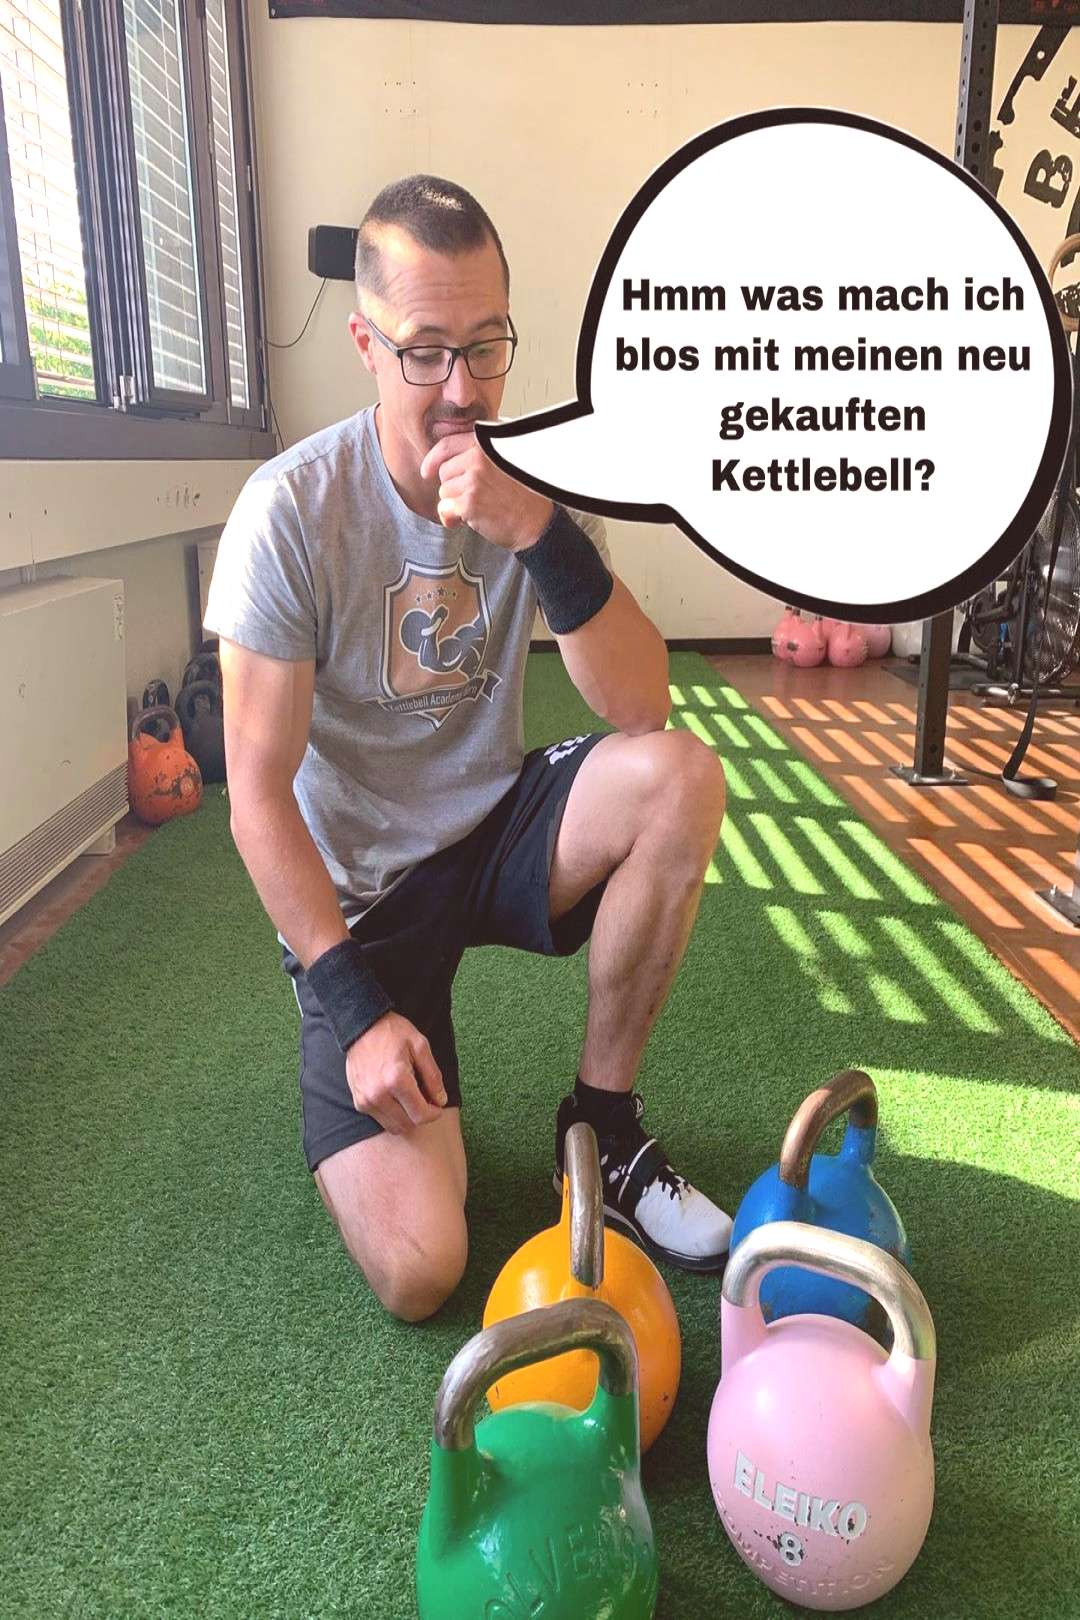 Kettlebell Academy Bern on May 31 2020 1 person